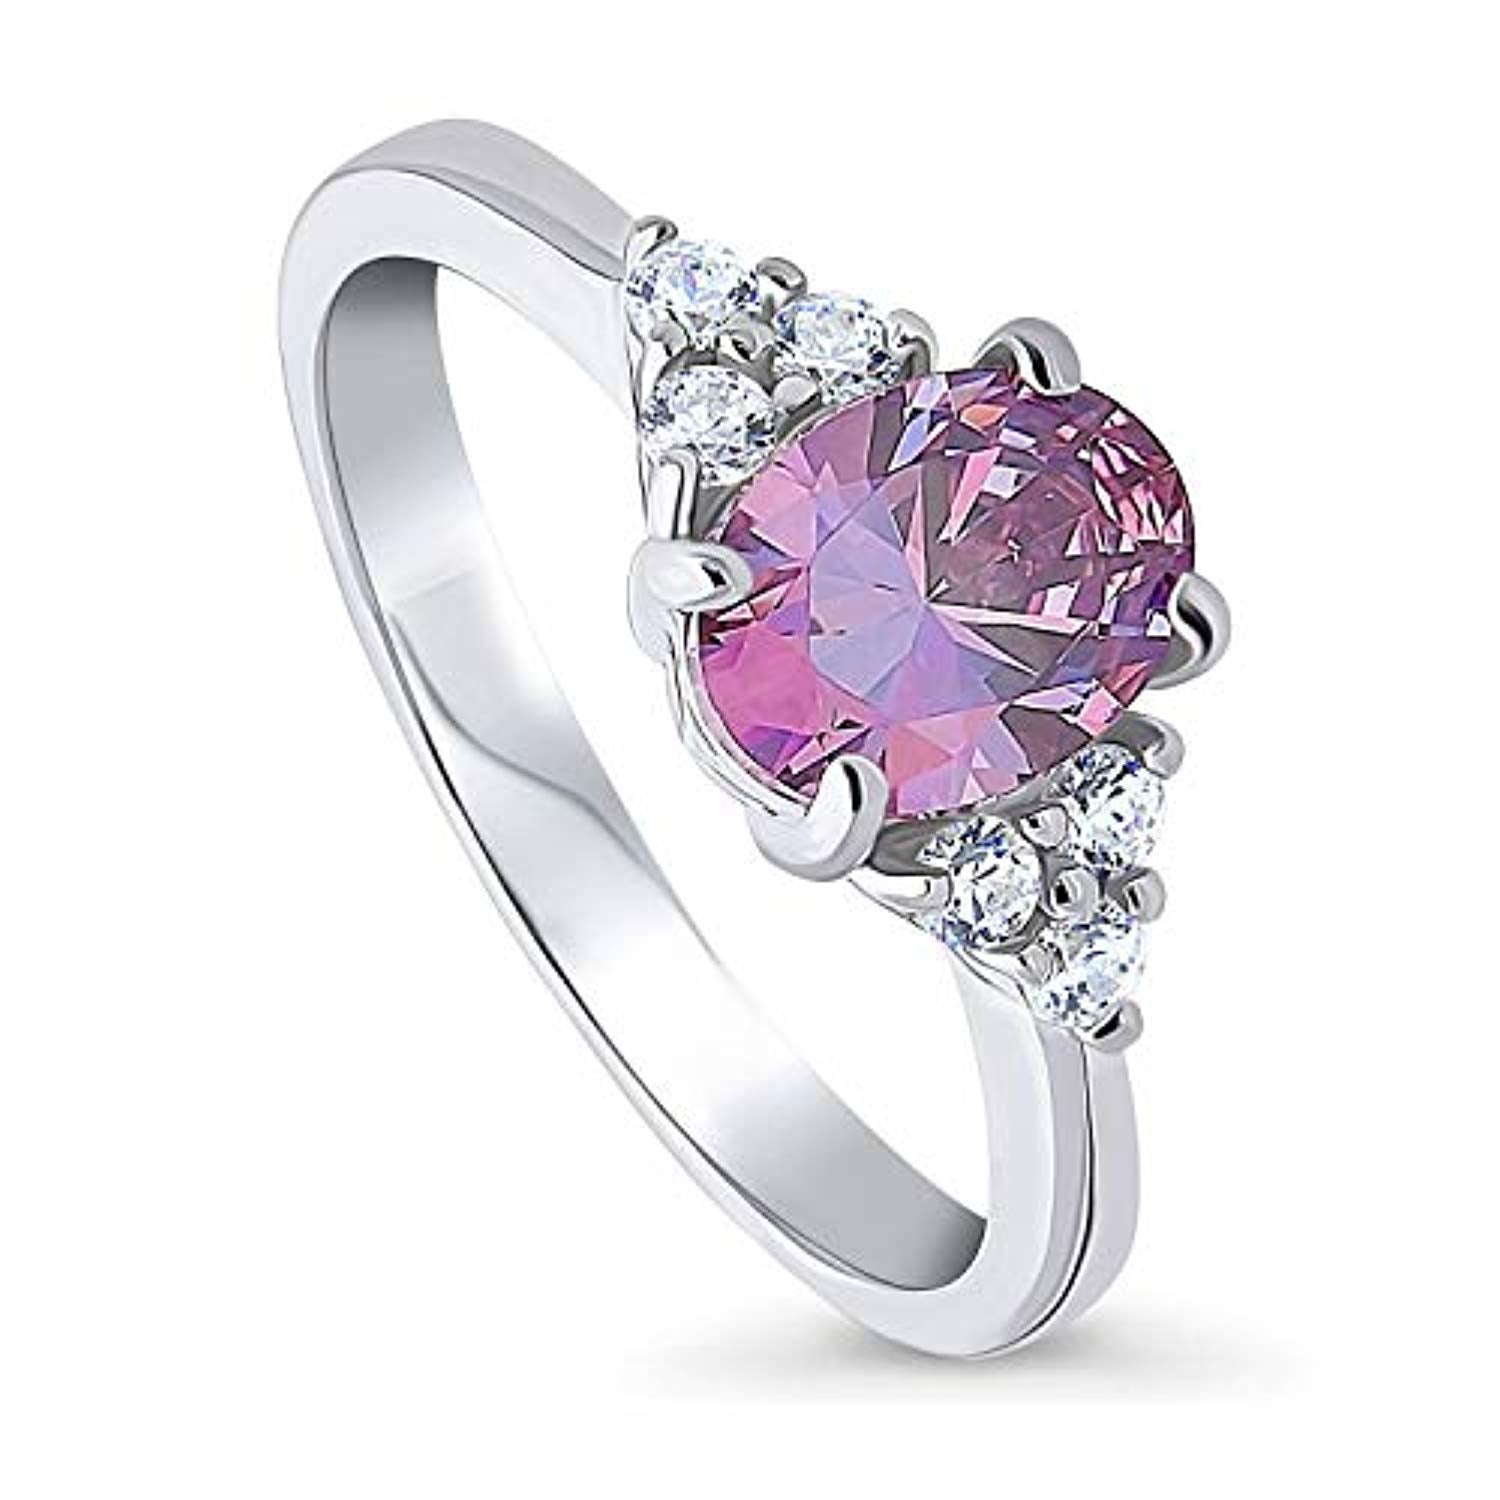 Rhodium Plated Sterling Silver Solitaire Promise Ring Made with Swarovski Zirconia Purple Oval Cut